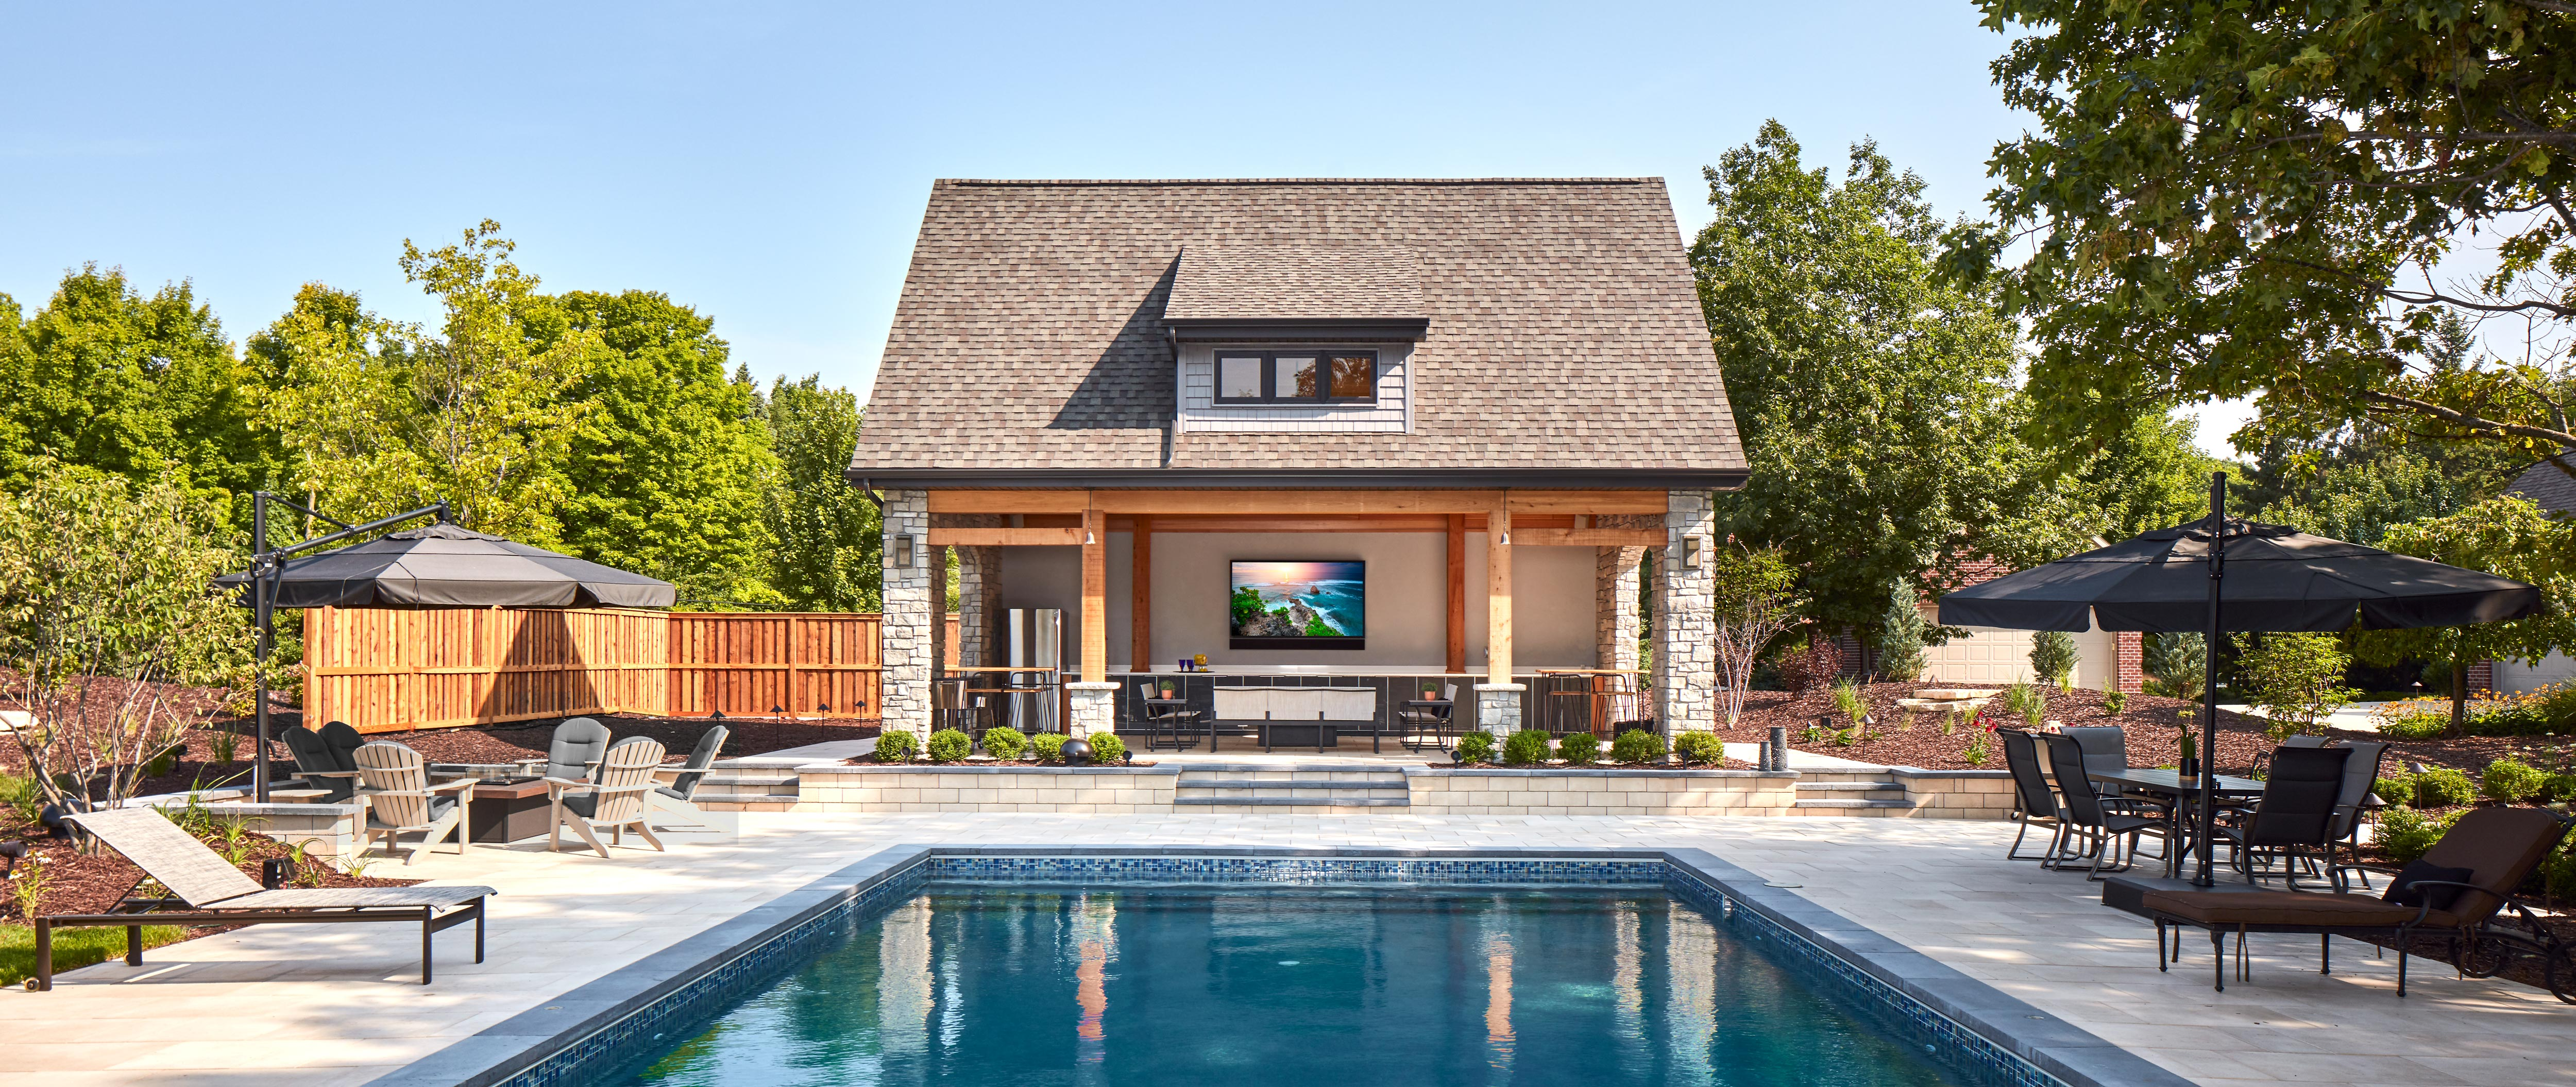 perfect outdoor entertainment space